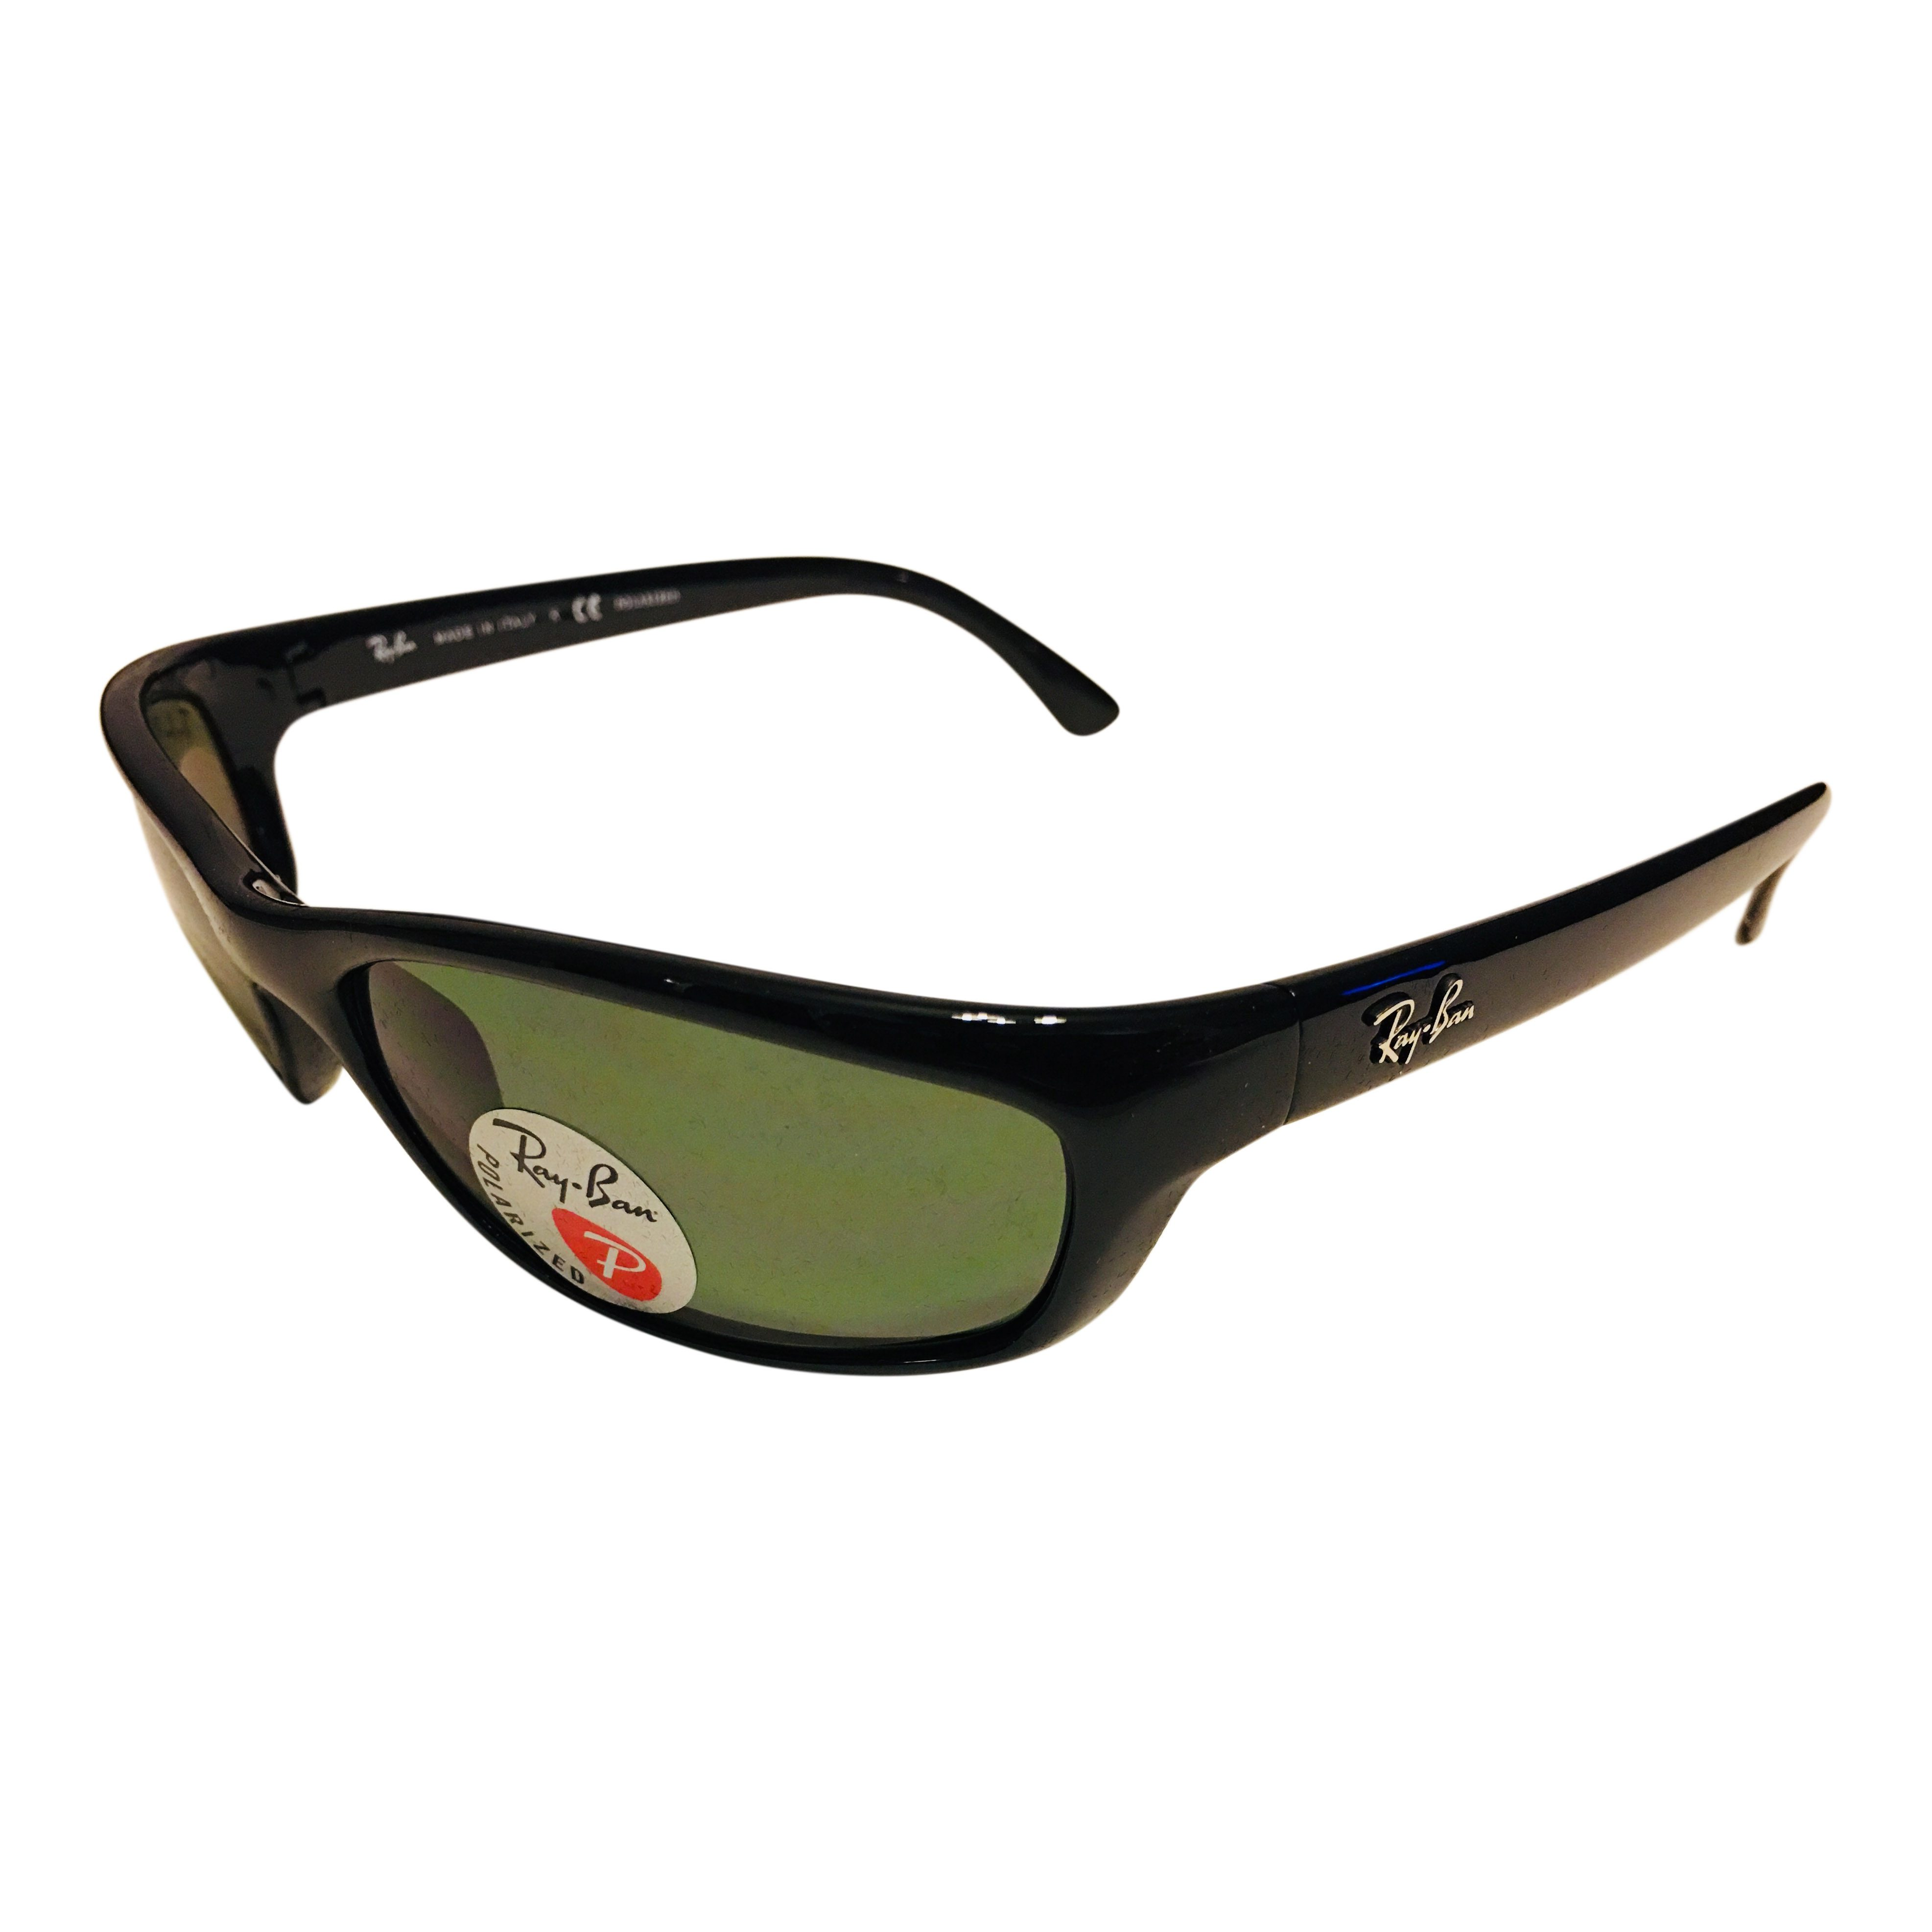 9037c5337f Ray-Ban Predator Sunglasses – Polished Black Frame – Polarized Green Lens  RB4115 601 9A